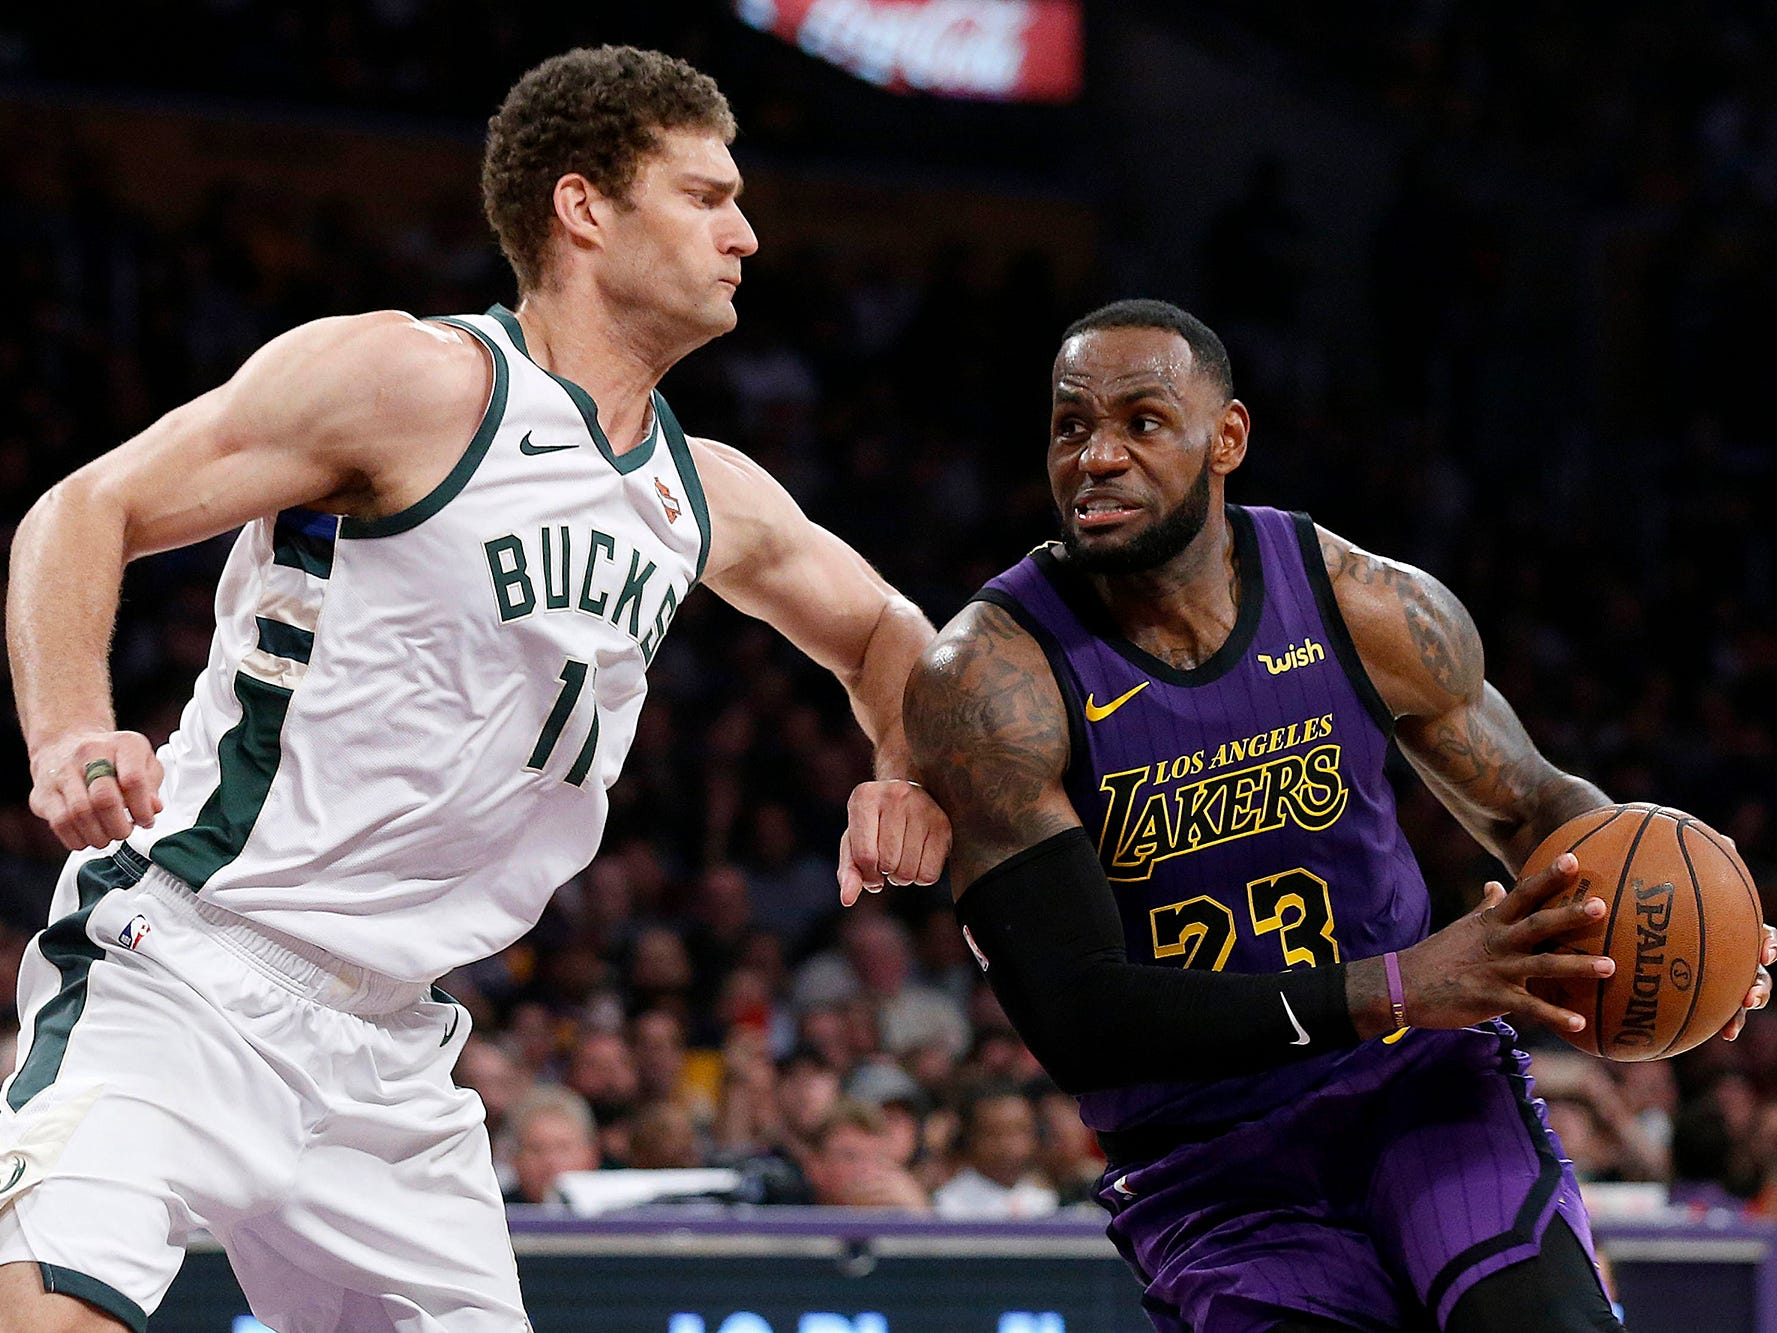 In a battle of serious expressions, Bucks center Brook Lopez tries to repel LeBron James' drive to the basket in the second half.